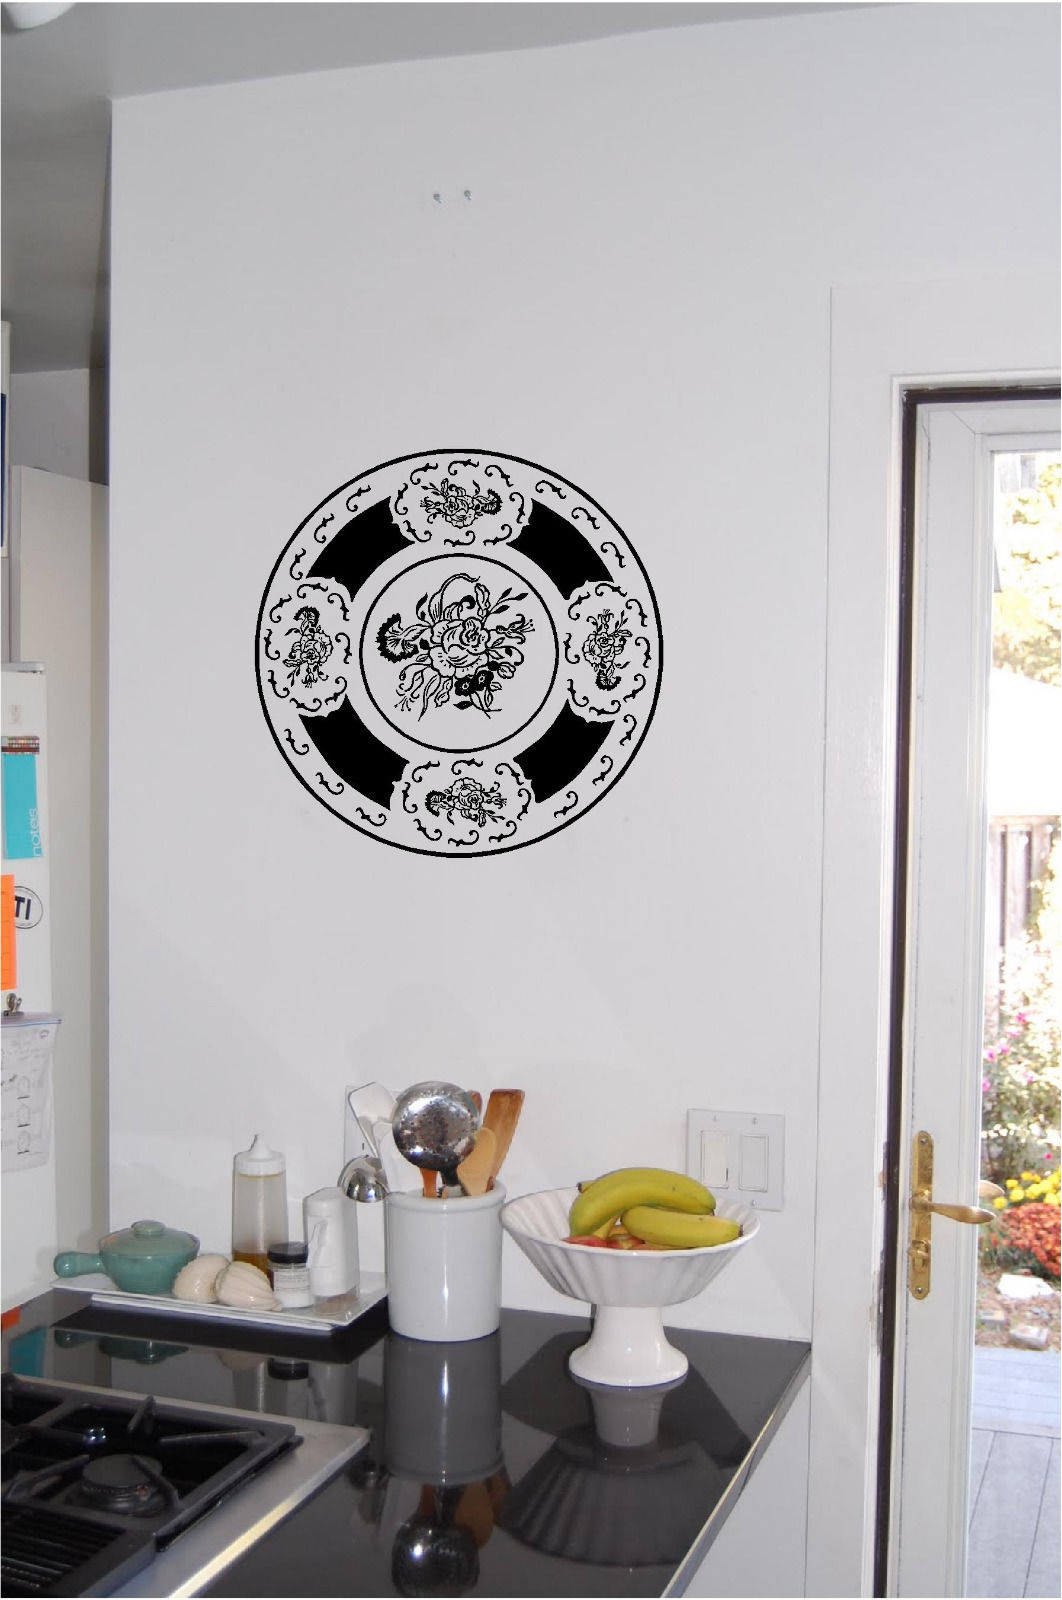 decorative plate wall sticker wall art kitchen decor vinyl. Black Bedroom Furniture Sets. Home Design Ideas